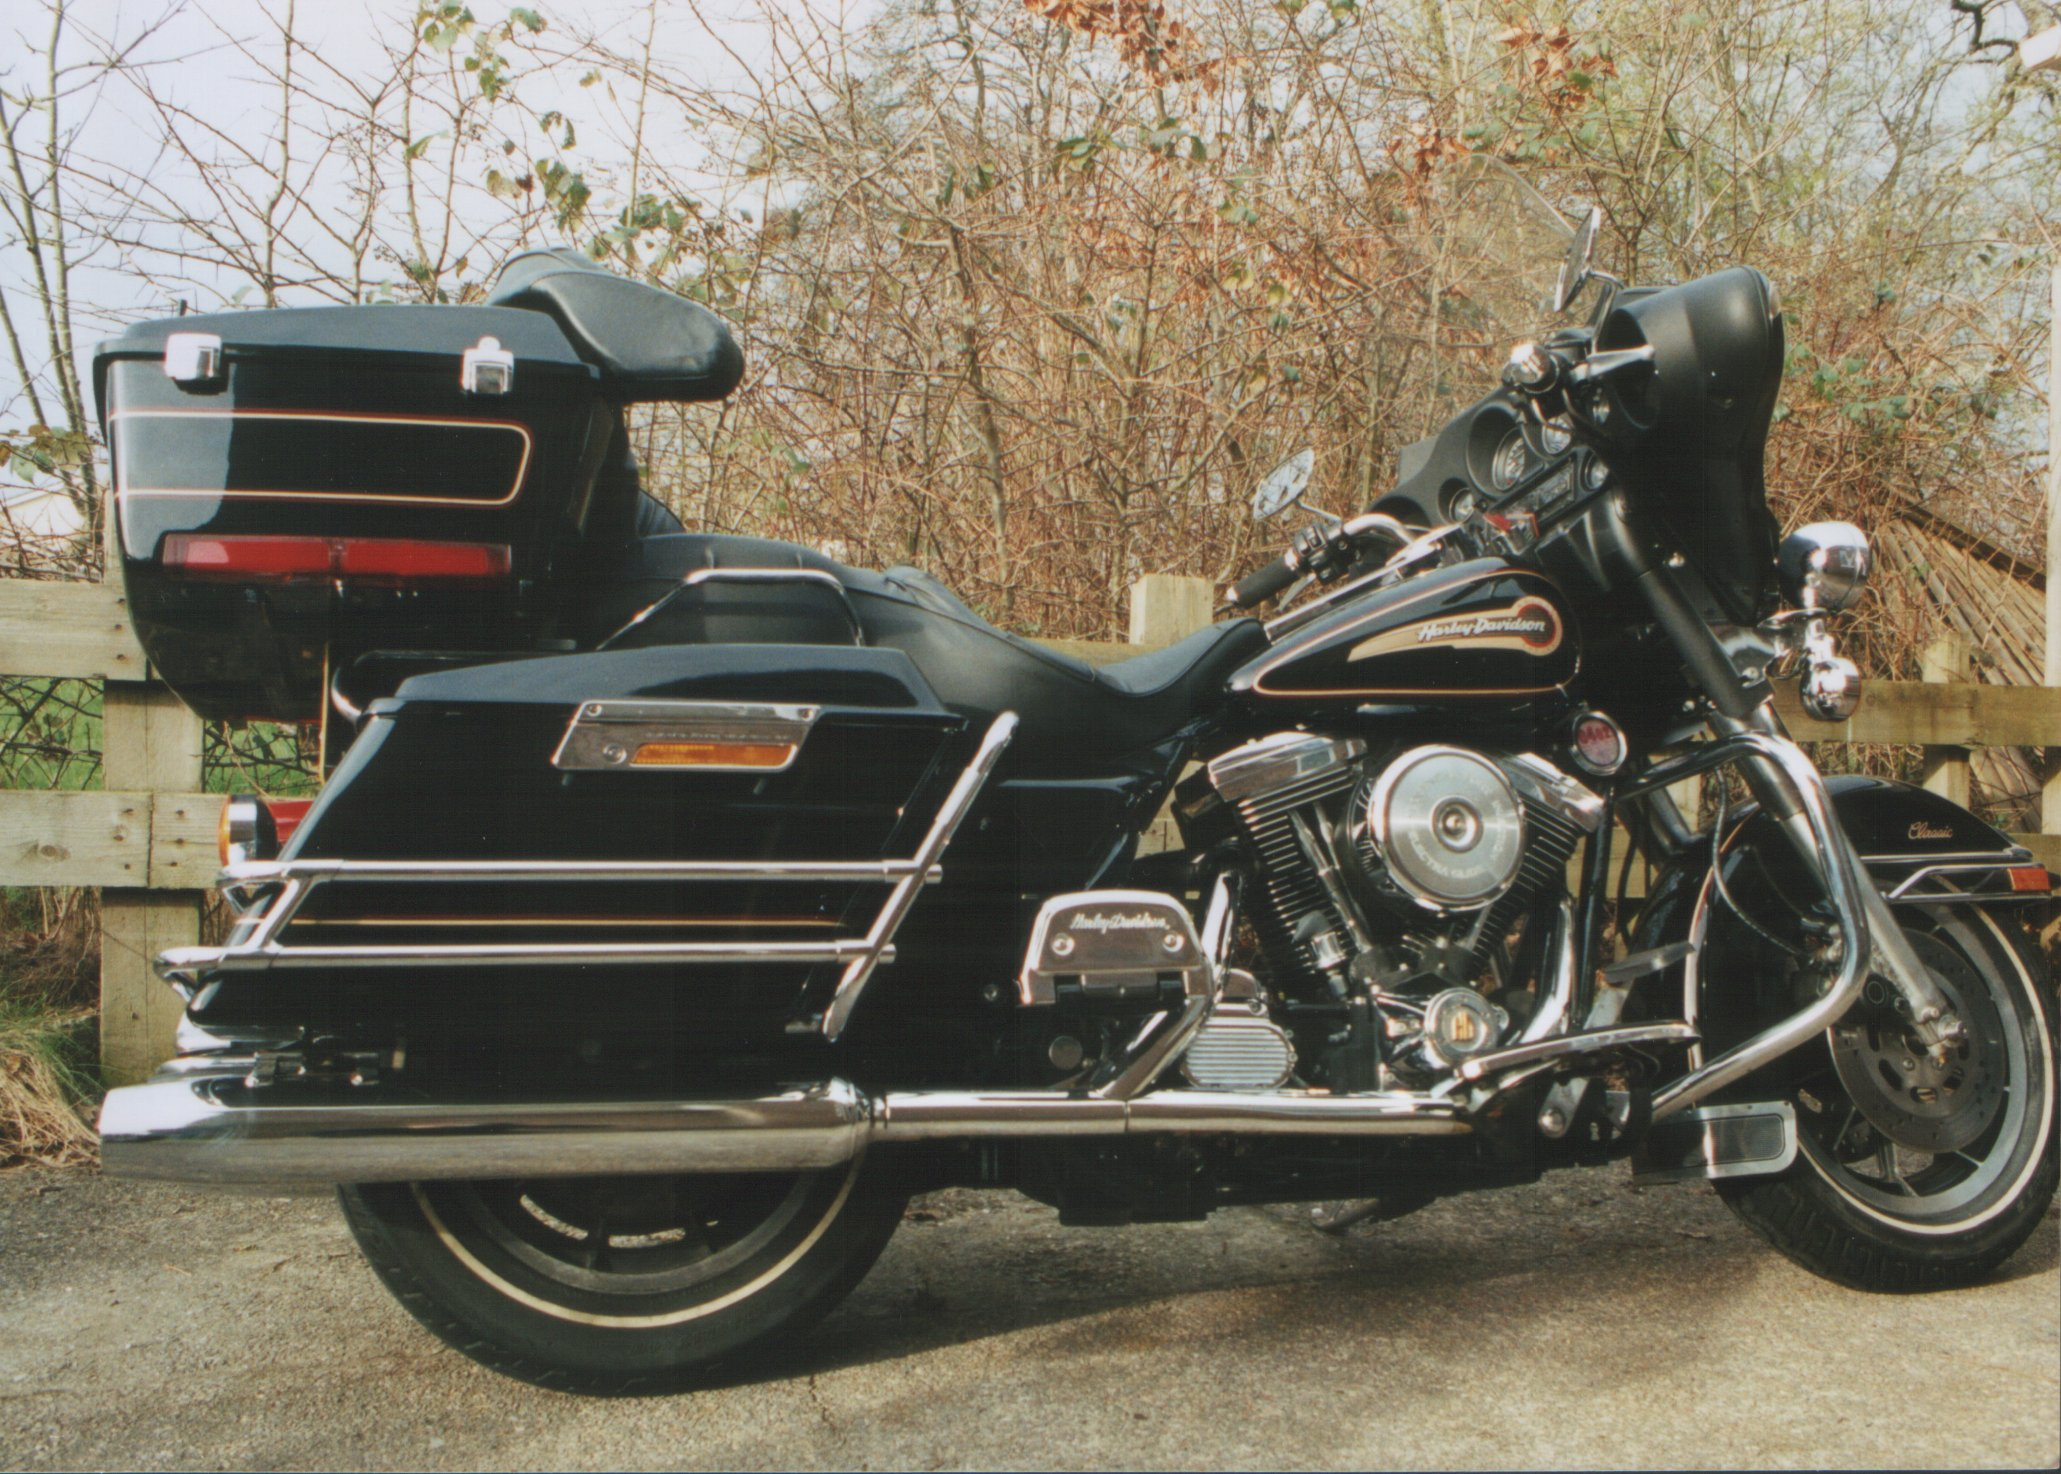 Harley-Davidson FLHTC 1340 Electra Glide Classic 1991 images #79895